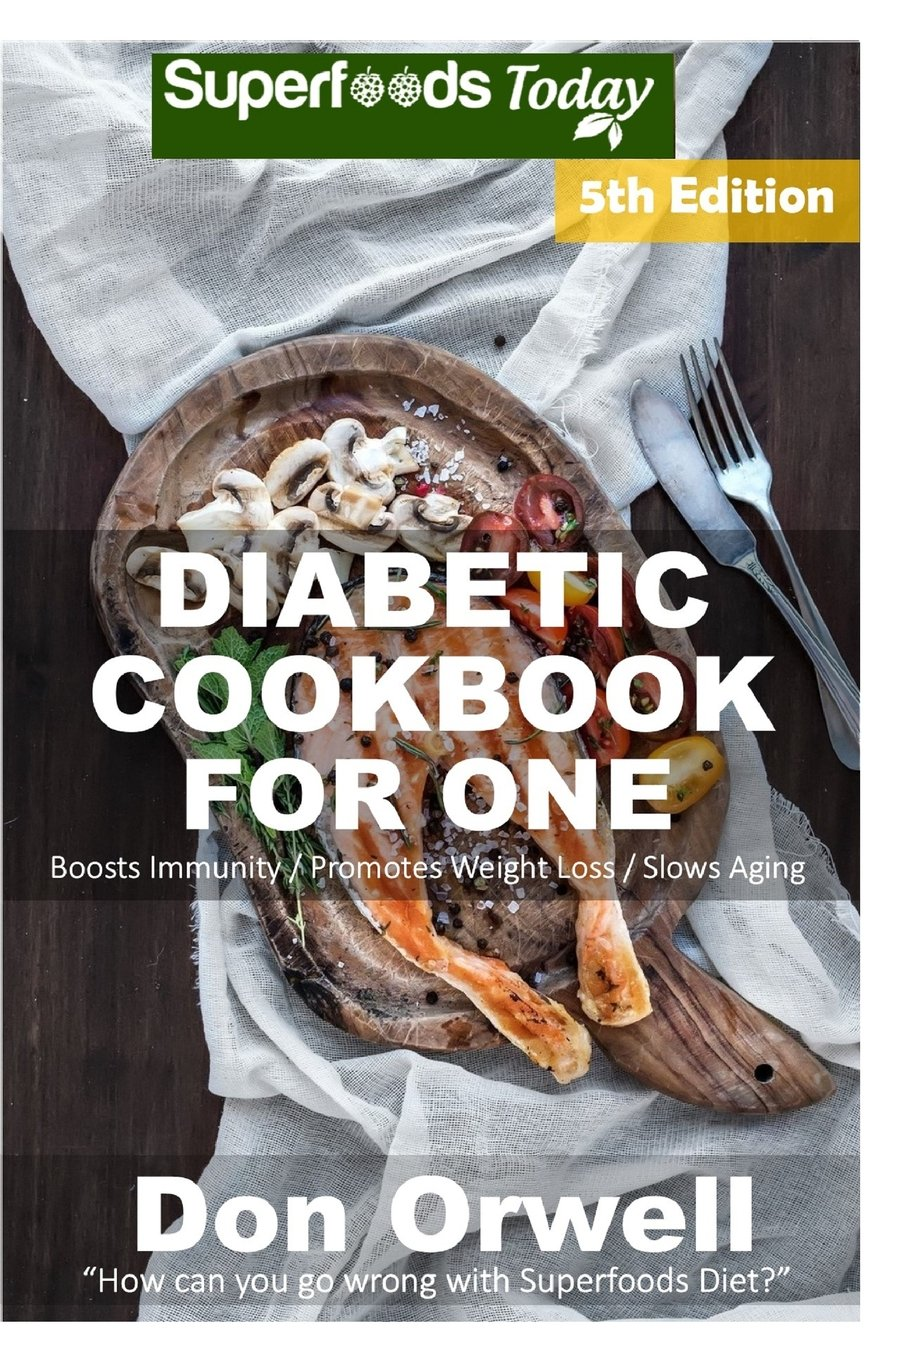 Diabetic Cookbook For One: Over 230 Diabetes Type-2 Quick & Easy Gluten Free Low Cholesterol Whole Foods Recipes full of Antioxidants & Phytochemicals (Natural Weight Loss Transformation) (Volume 100) pdf